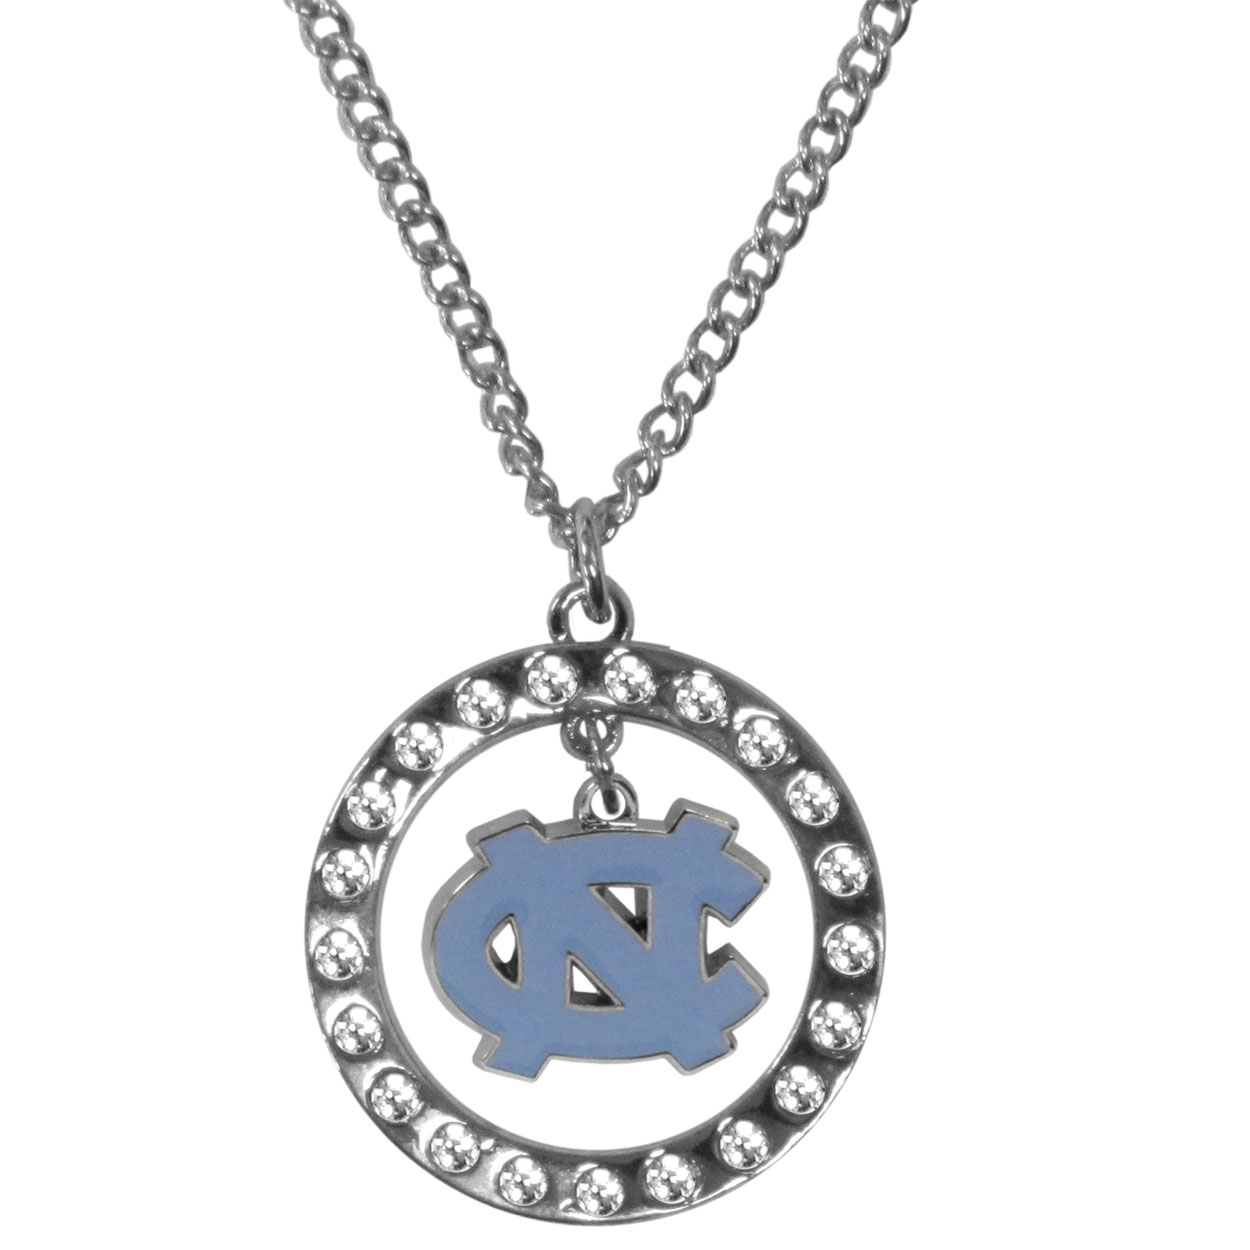 N. Carolina Tar Heels Rhinestone Hoop Necklaces - Our N. Carolina Tar Heels rhinestone hoop necklace comes on an 18 inch chain and features a hoop covered in rhinestones with a high polish chrome finish and a cast and enameled team charm dangling in the center.